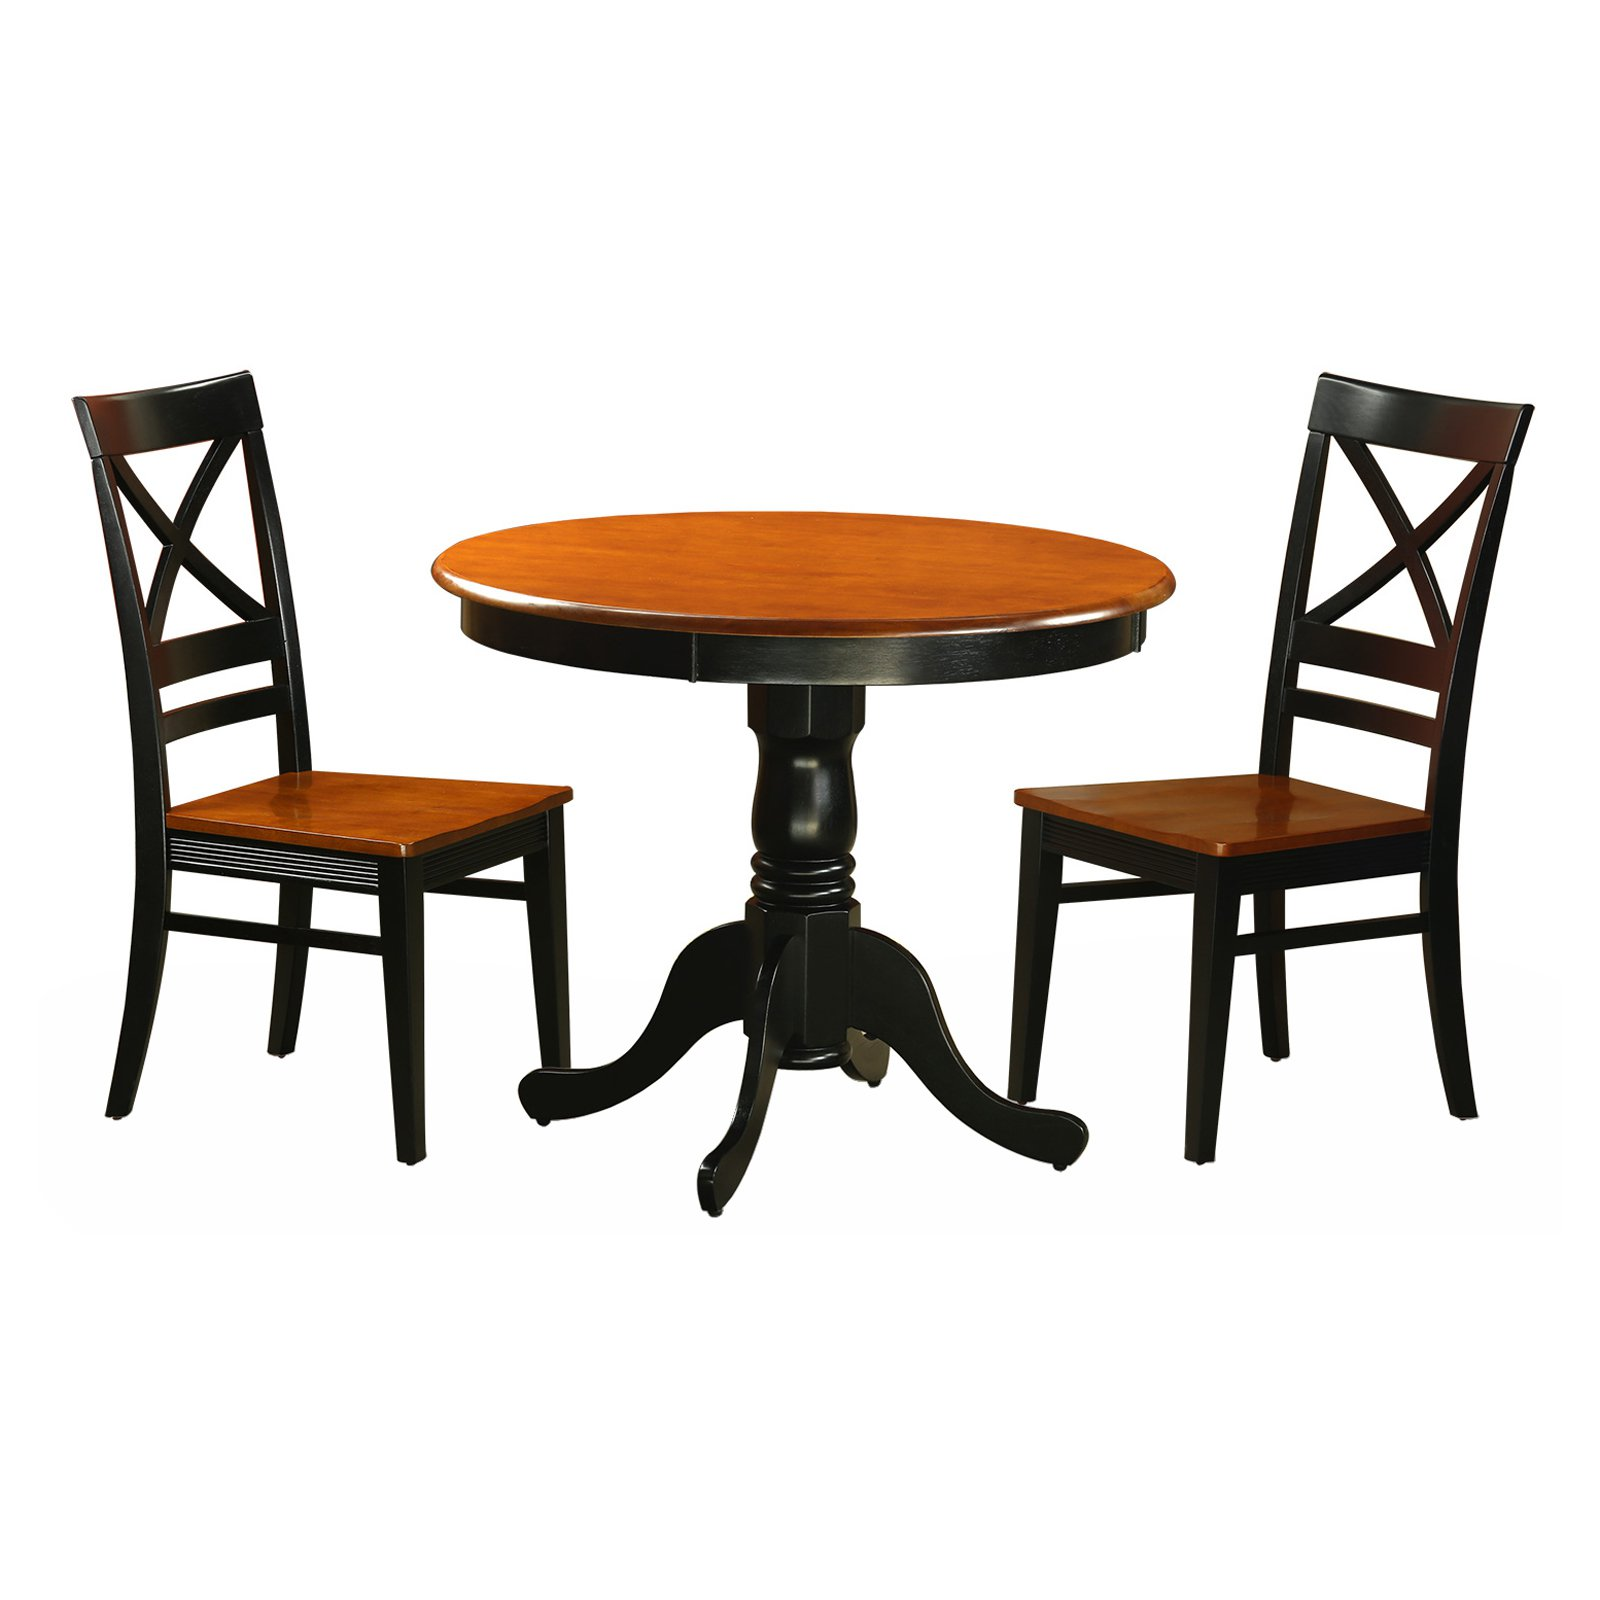 East West Furniture Antique 3 Piece Pedestal Dining Table Set with Quincy Wooden Seat Chairs